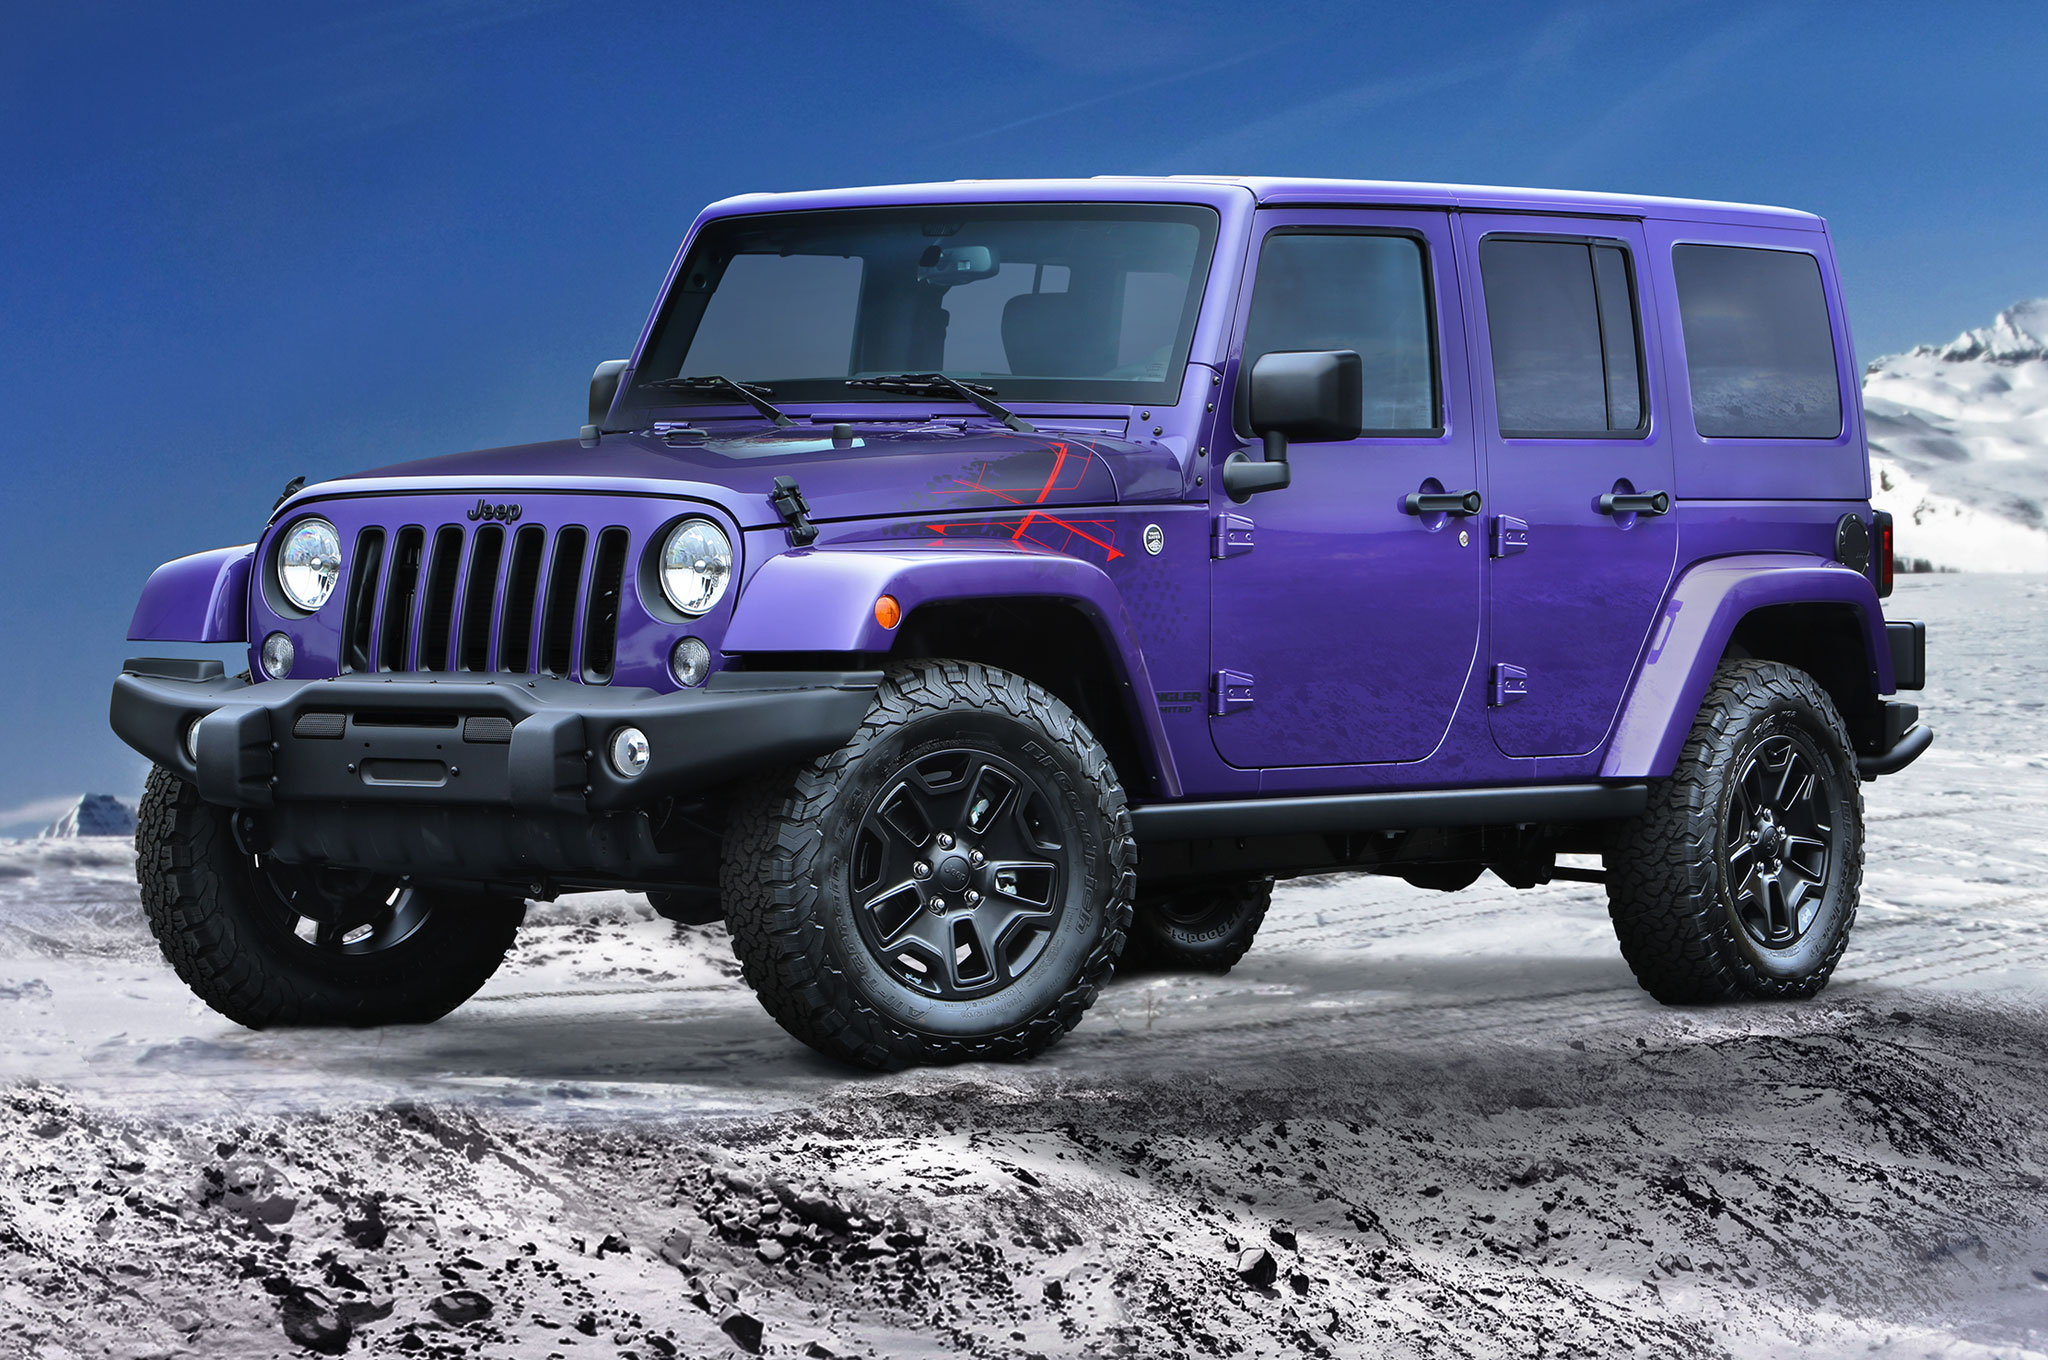 Jeep Recalls 2016, 2017 Wranglers for Impact Sensor Wiring ... on jeep carrier bearing, jeep seat belt harness, jeep visor clip, jeep gas sending unit, jeep engine harness, jeep tach, jeep wiring connectors, jeep relay wiring, jeep wire connectors, jeep key switch, jeep exhaust gasket, jeep vacuum advance, jeep bracket, jeep intake gasket, jeep knock sensor, jeep sport emblem, jeep electrical harness, jeep condensor, jeep exhaust leak, jeep wiring diagram,